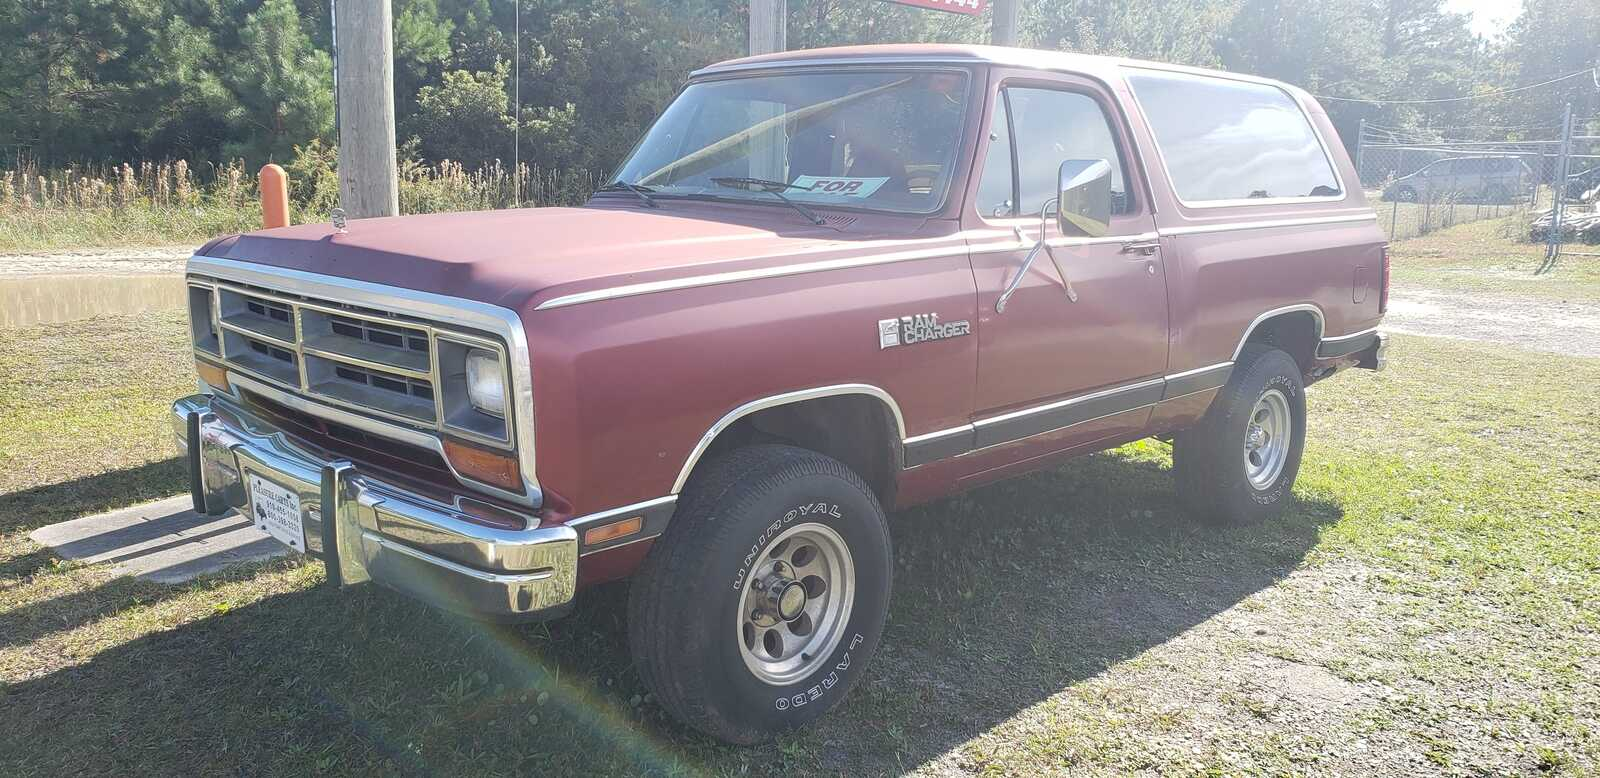 Search For New And Used Dodge Ramcharger For Sale In Norway Me